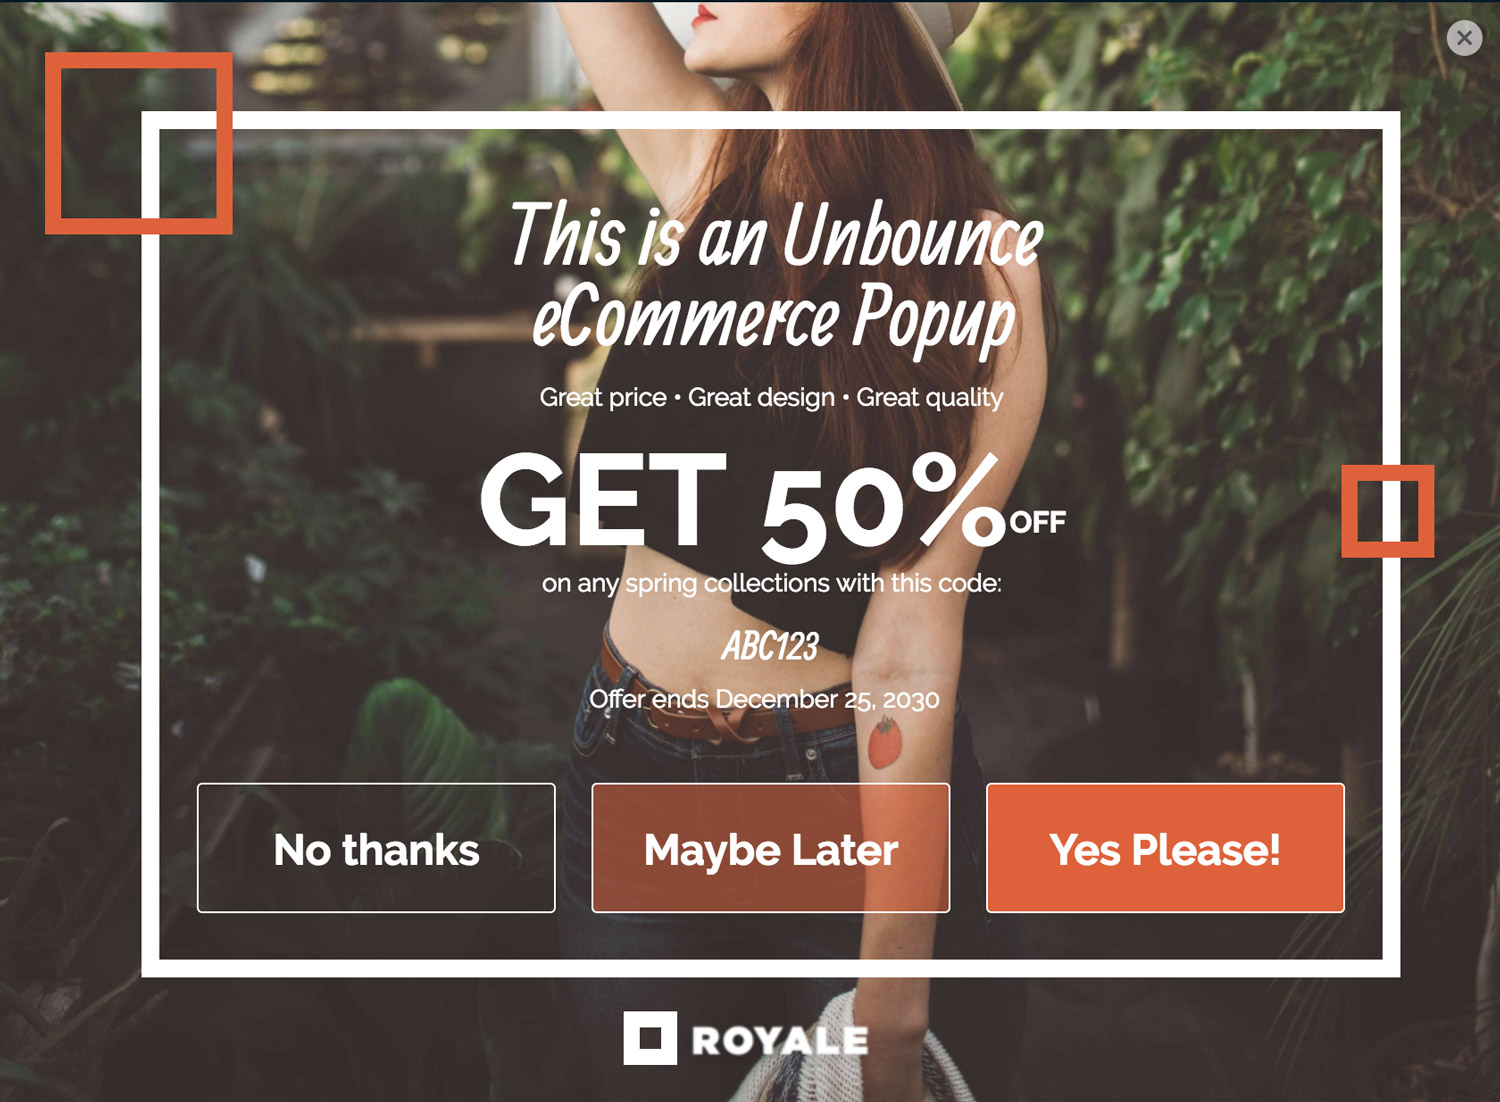 Maybe Later - A New interaction model for ecommerce entrance popups